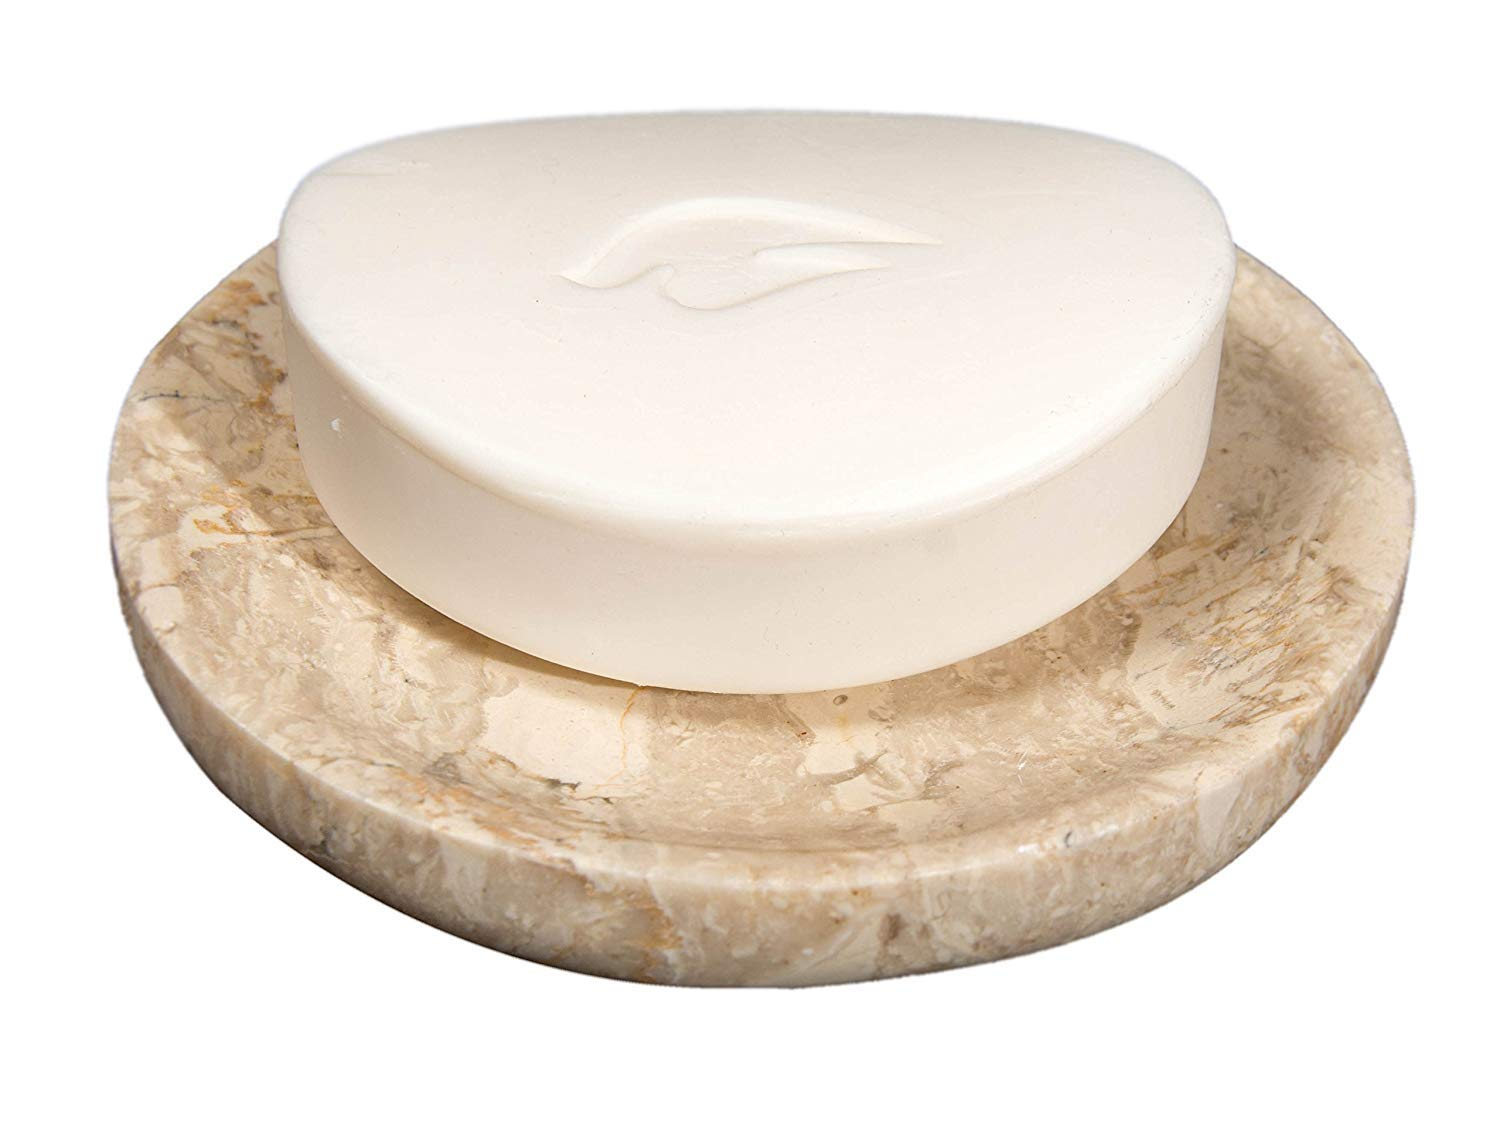 Beautifully Crafted Bathroom Accessory Polished and Shiny Marble Dish Holder Black TUZECH Beige Marble Soap Dish